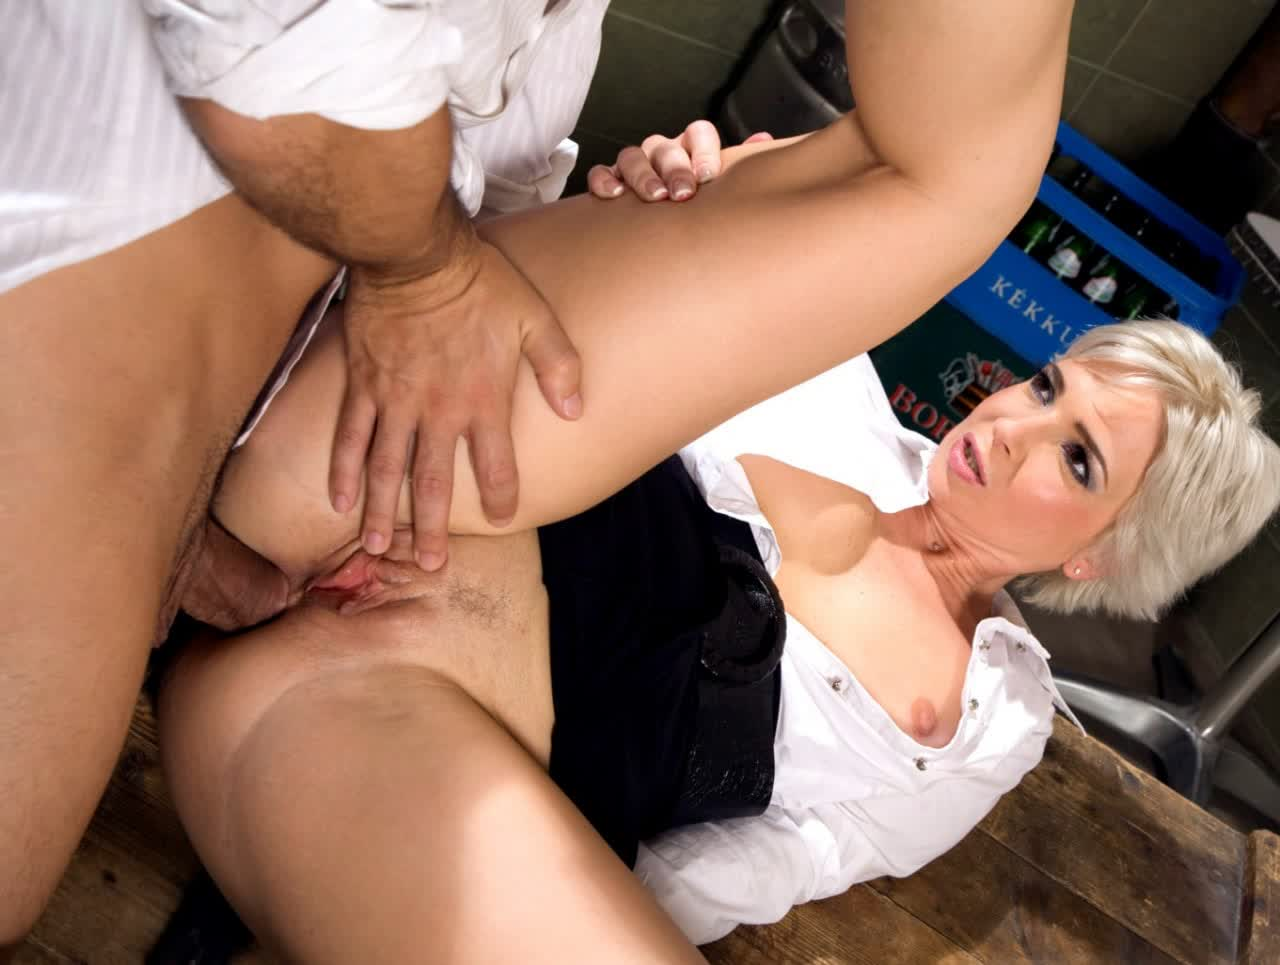 Hookup Escapade Steaming Gig Inbetween Doctor And Patient Maddy Oreilly Vid18